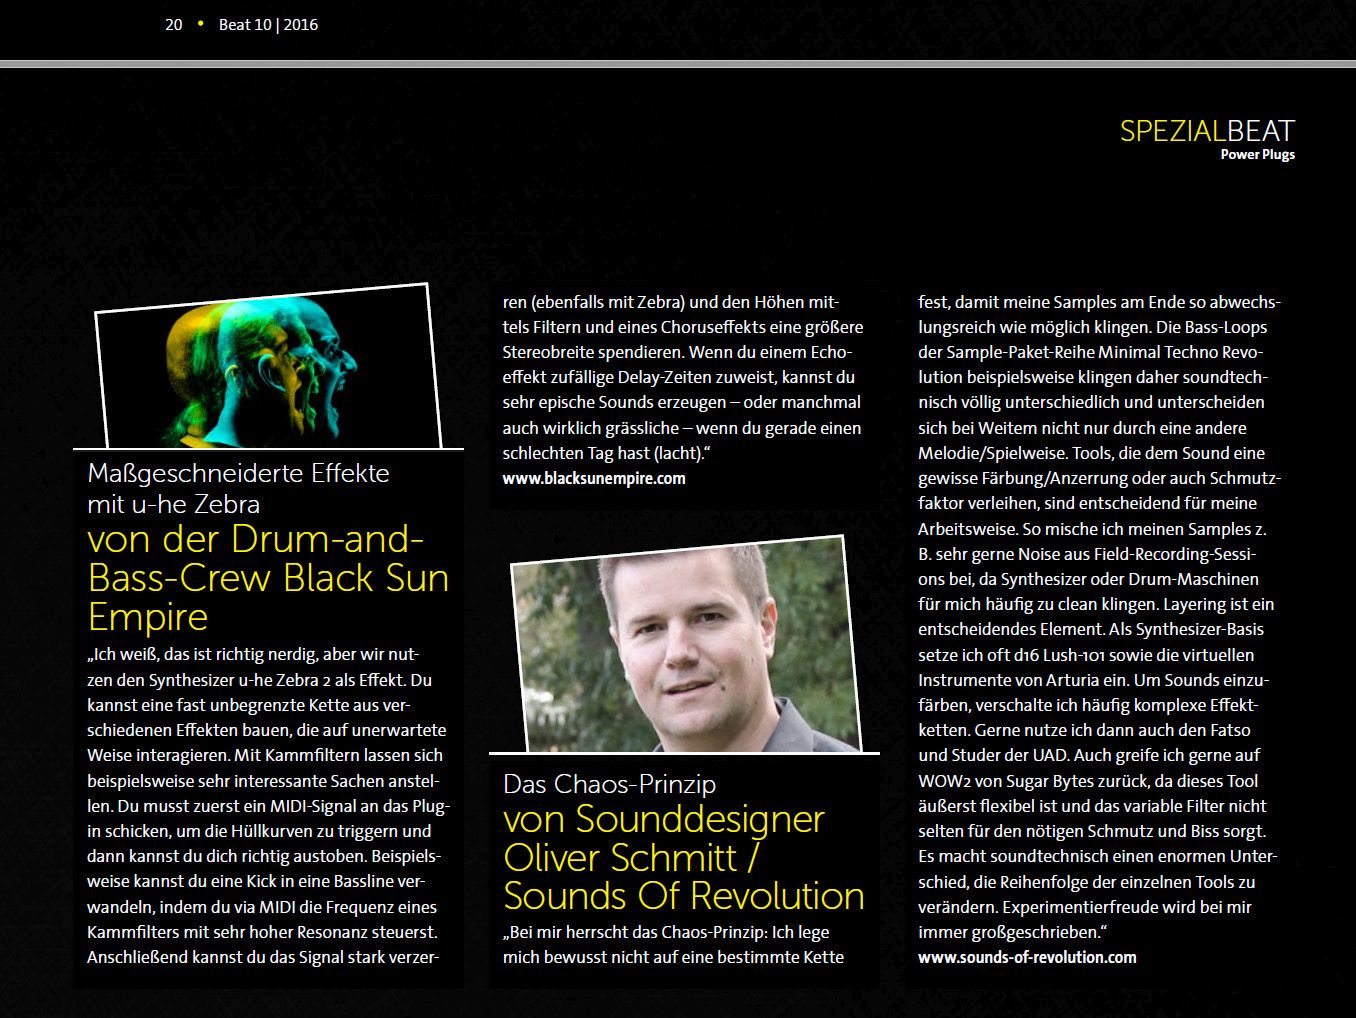 BEAT Magazine - special article about Power Plugins with Oliver Schmitt (SOR)